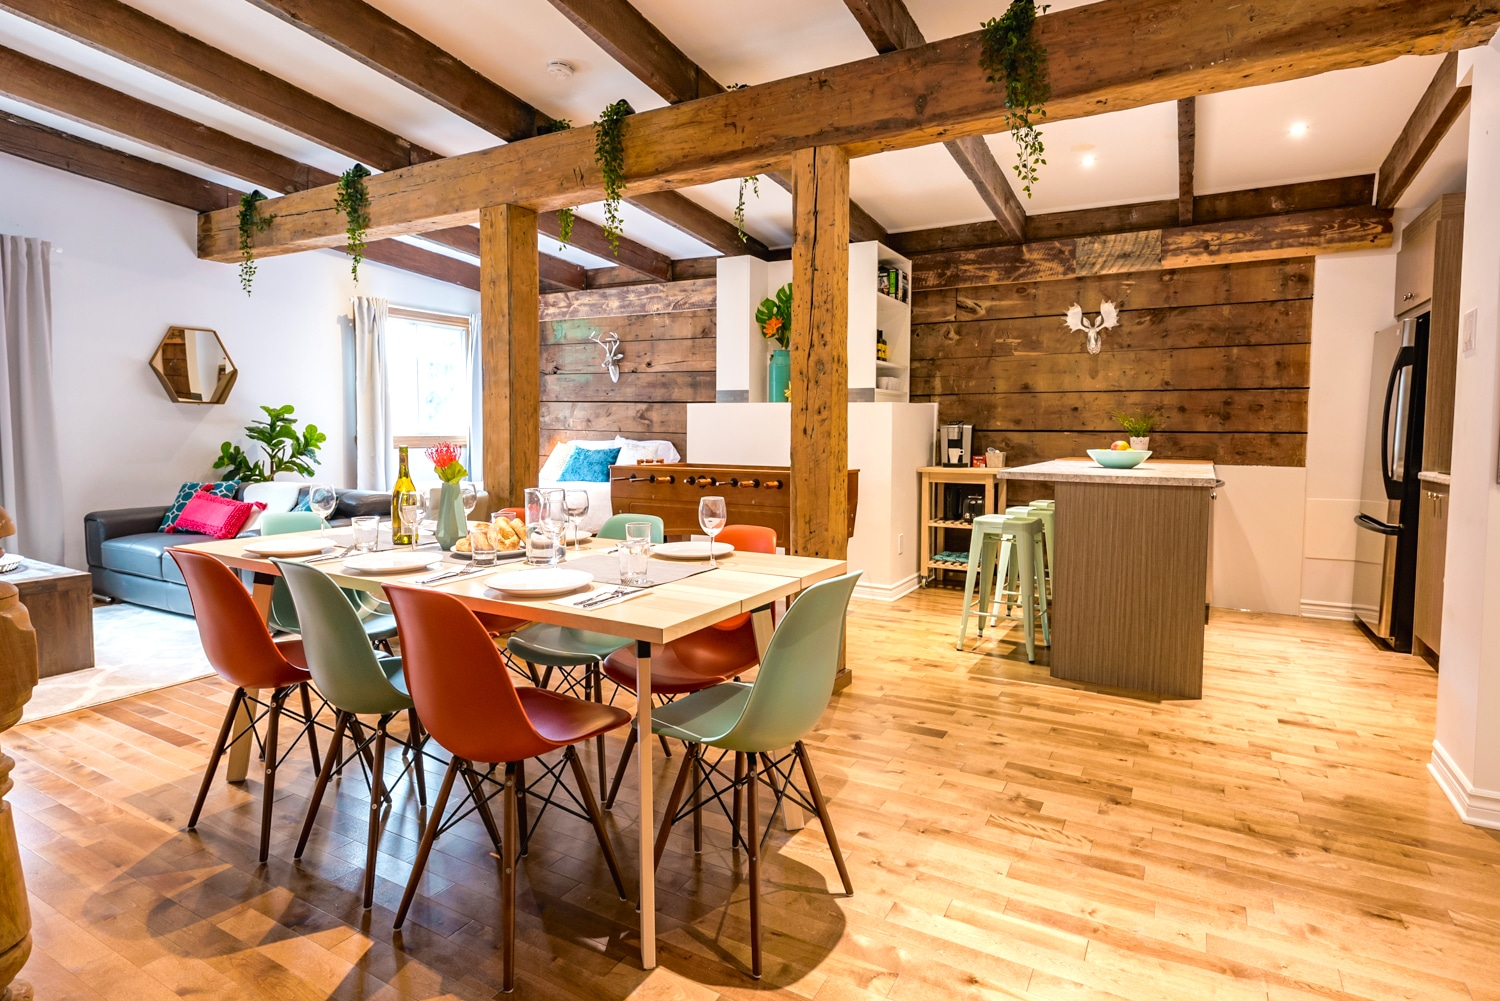 Warm apartment on 2 floors with original beams